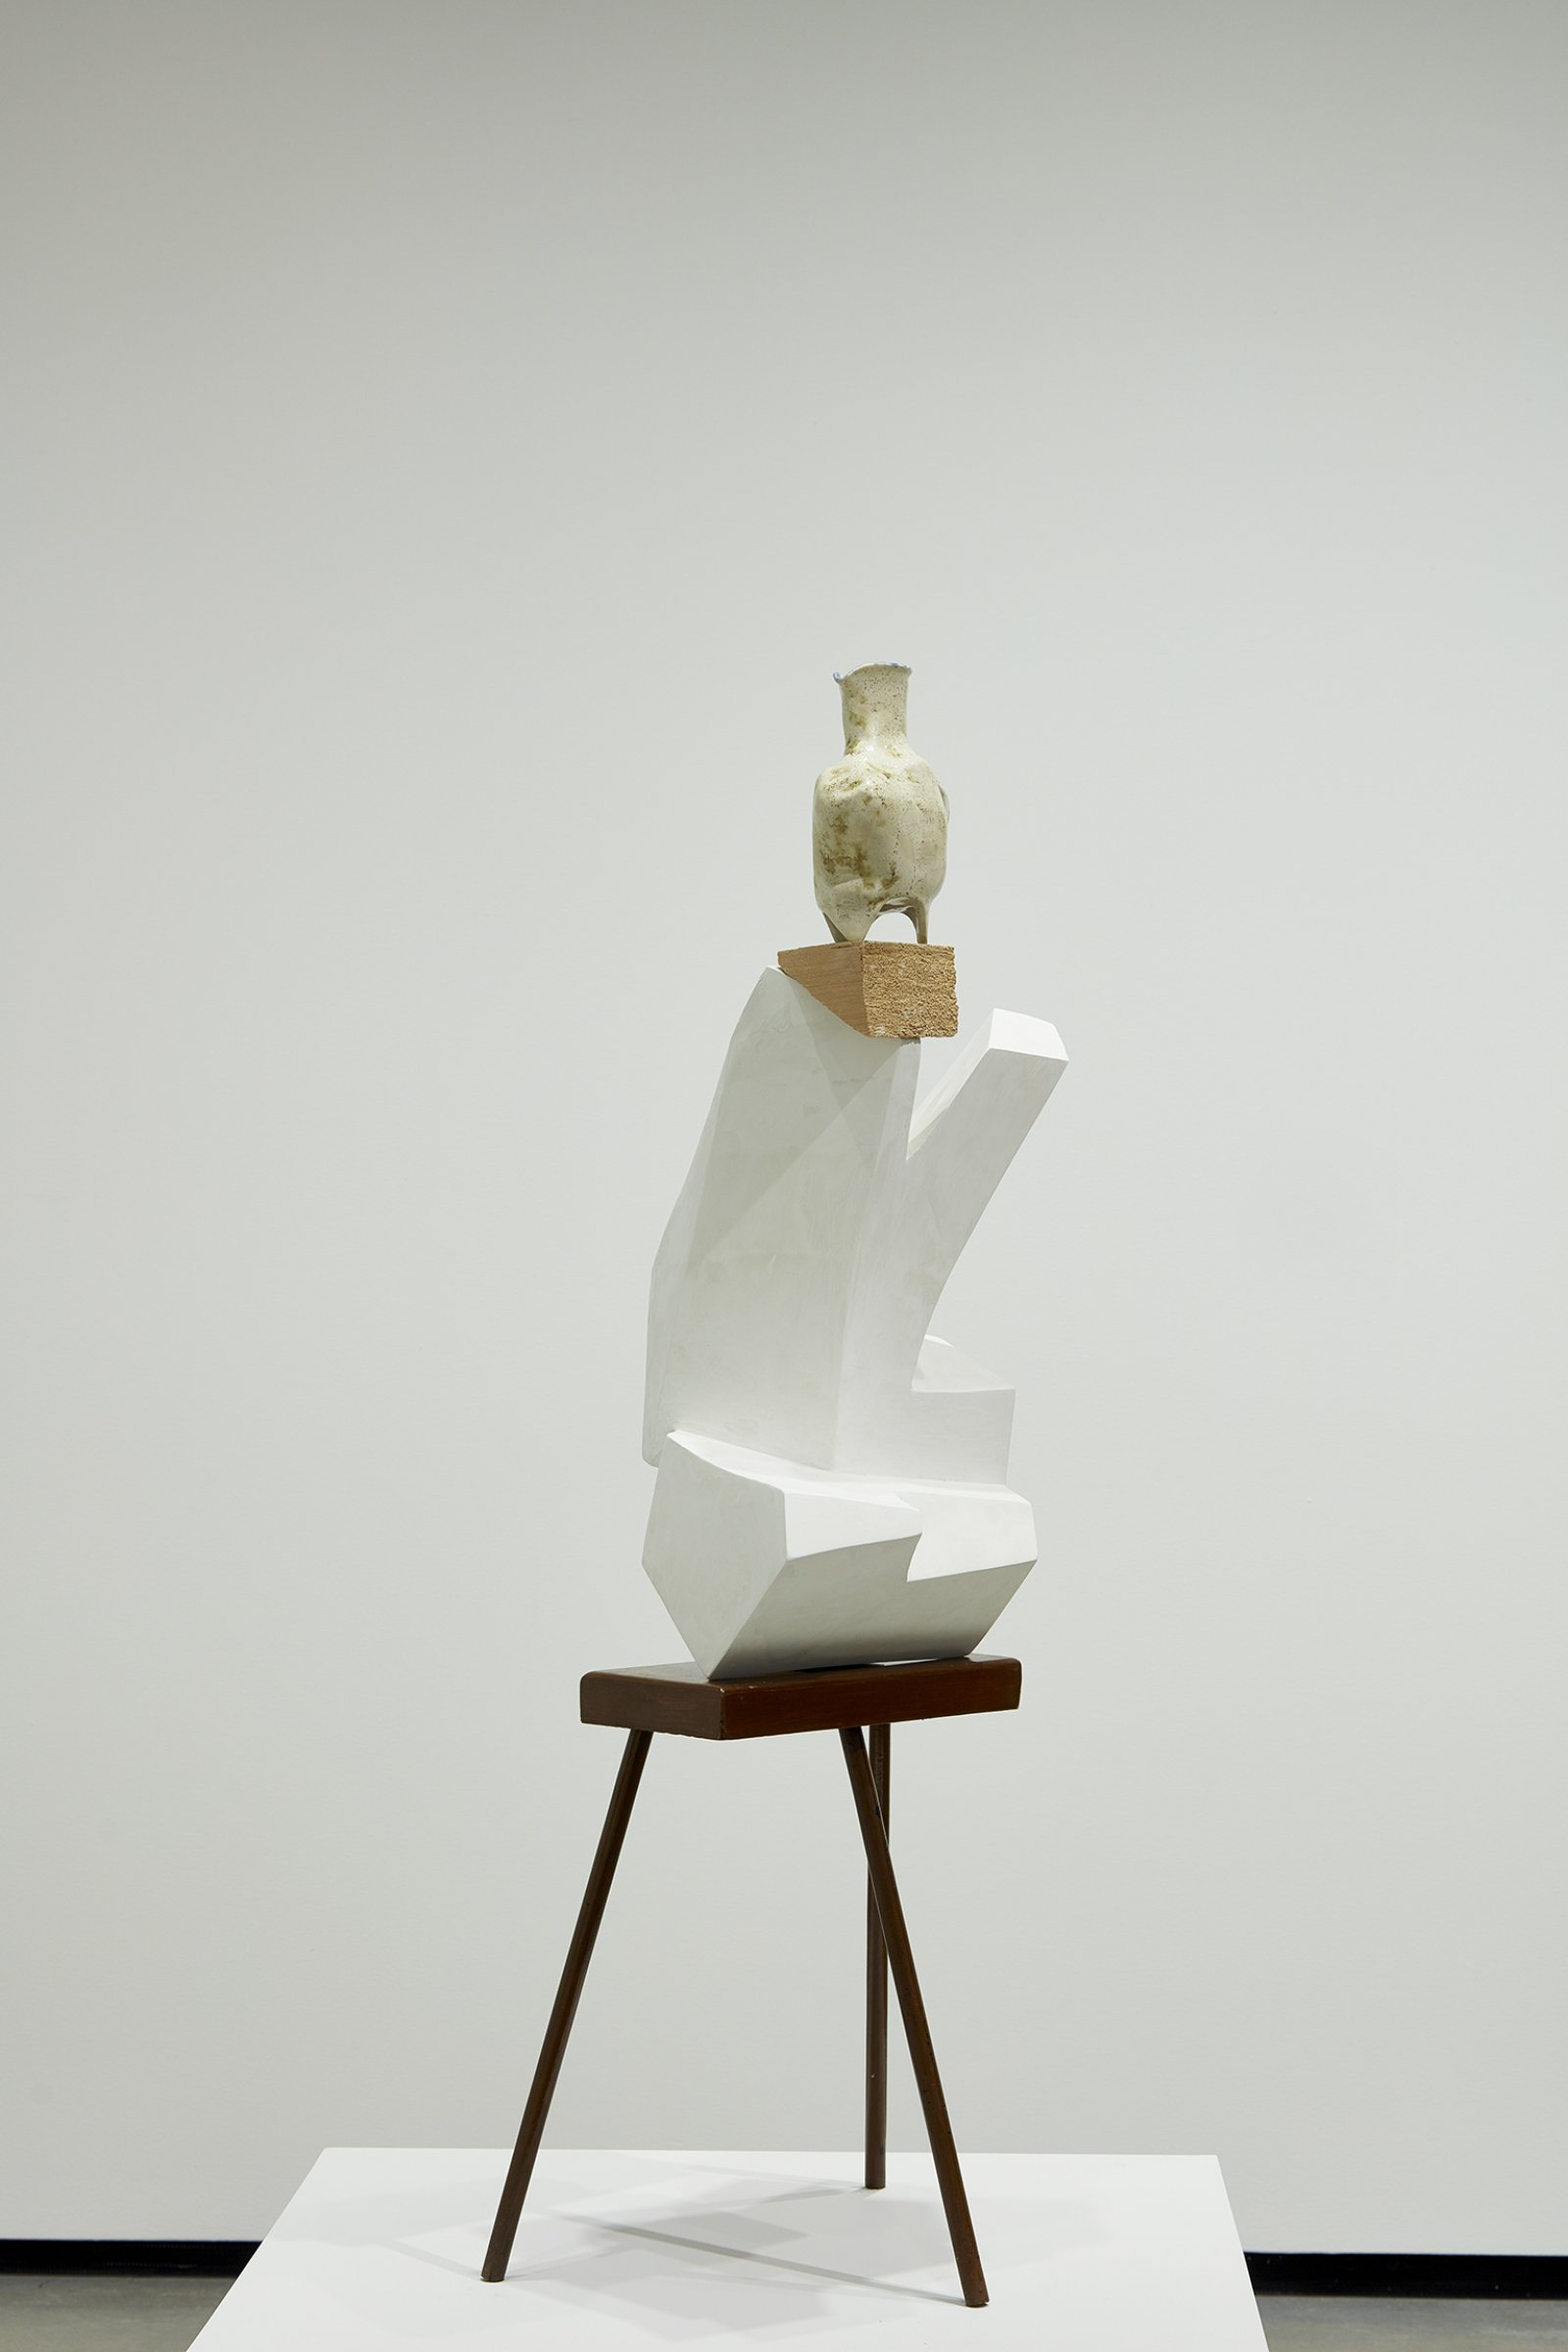 Damian Moppett, Abstracted Acrobat, 2011, plaster, stoneware, styrofoam, wood, 54 x 18 x 13 in. (137 x 46 x 33 cm). Installation view, Every Story Has Two Sides, Art Gallery of Alberta, Edmonton, 2016 by Damian Moppett